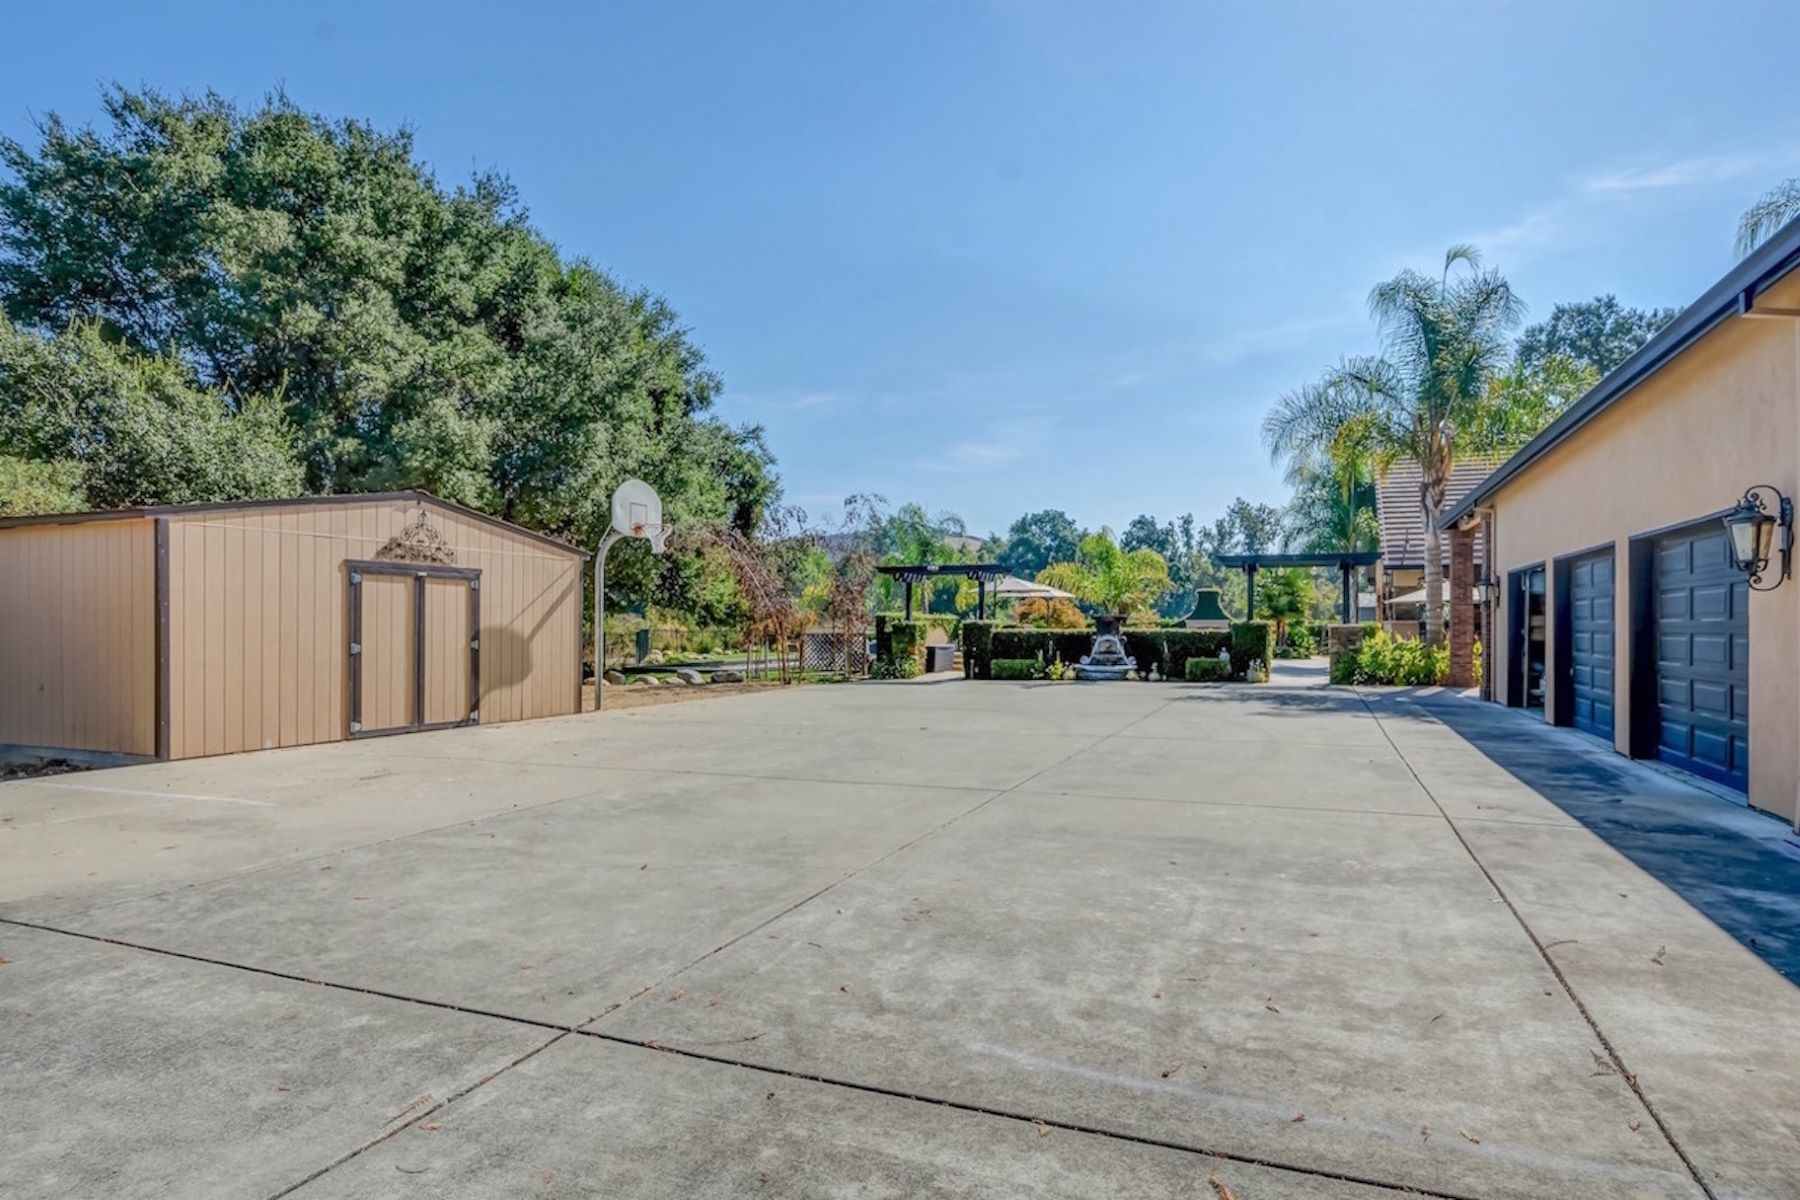 Additional photo for property listing at 7700 Foothill Road, Pleasanton 7700 Foothill Rd Pleasanton, California 94566 United States